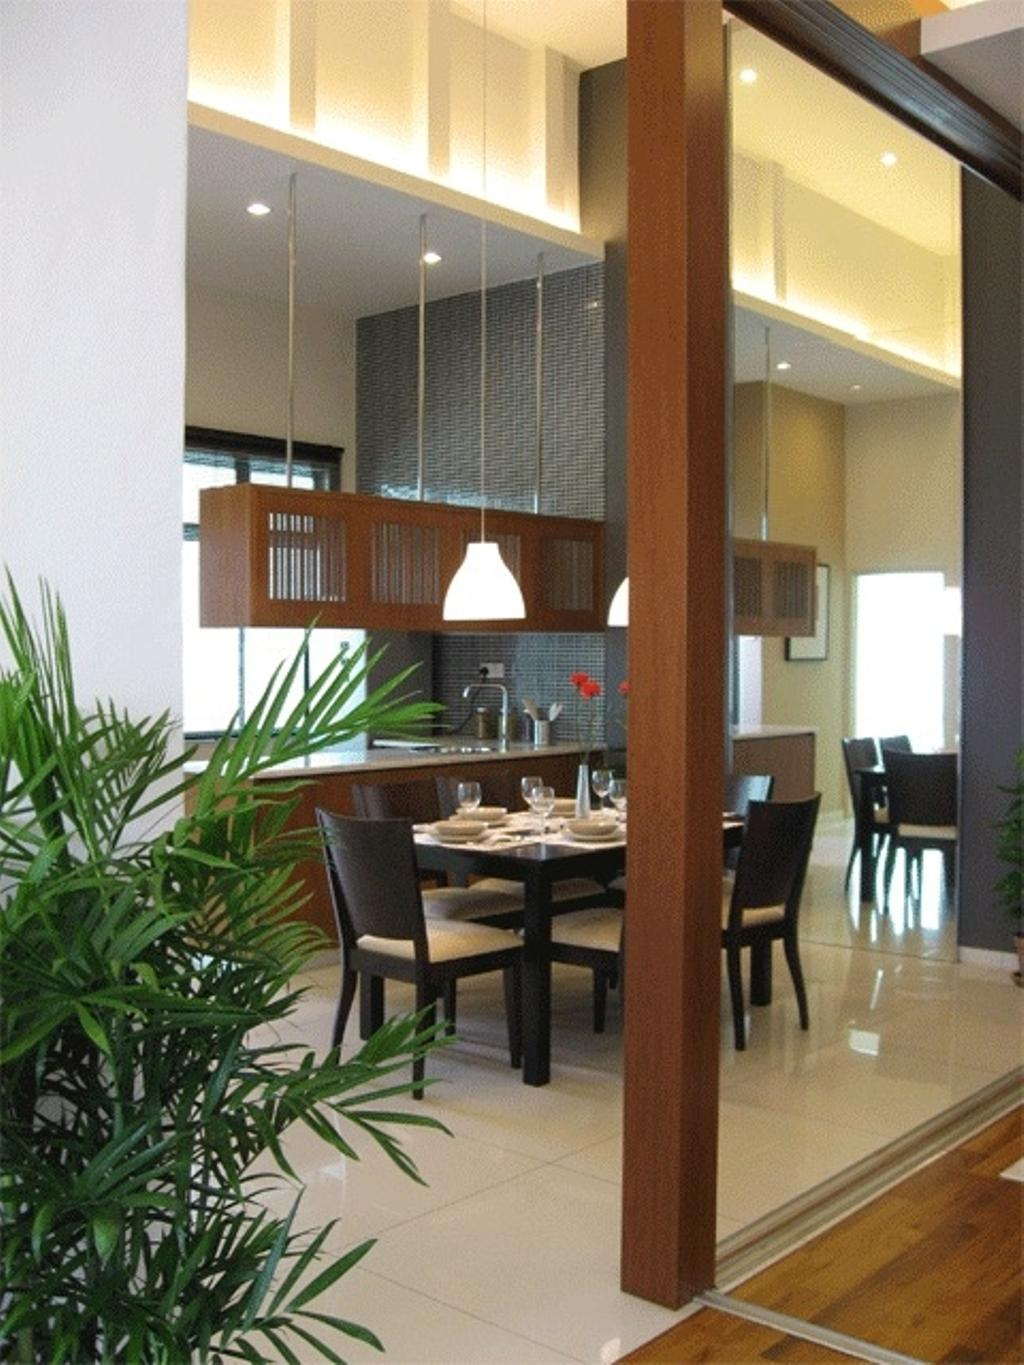 Contemporary, Condo, Dining Room, Angkasa Nuri Show Unit, Interior Designer, Arkitek U-Lin, Minimalistic, Flora, Jar, Plant, Potted Plant, Pottery, Vase, Dining Table, Furniture, Table, Indoors, Interior Design, Room, Sink, Couch, Chair